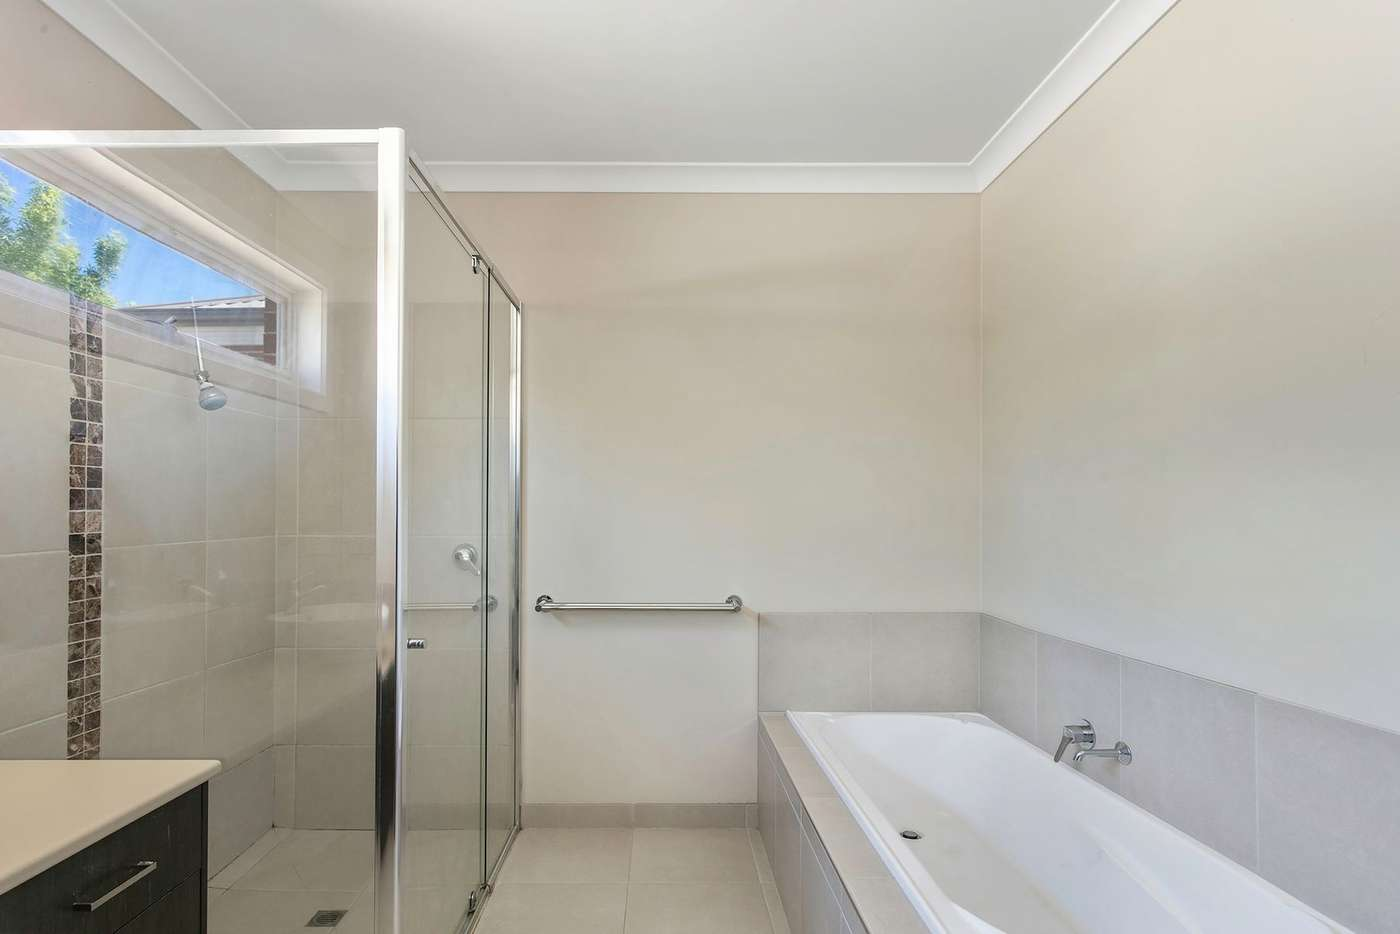 Seventh view of Homely house listing, 26A Edwin Street, North Bendigo VIC 3550